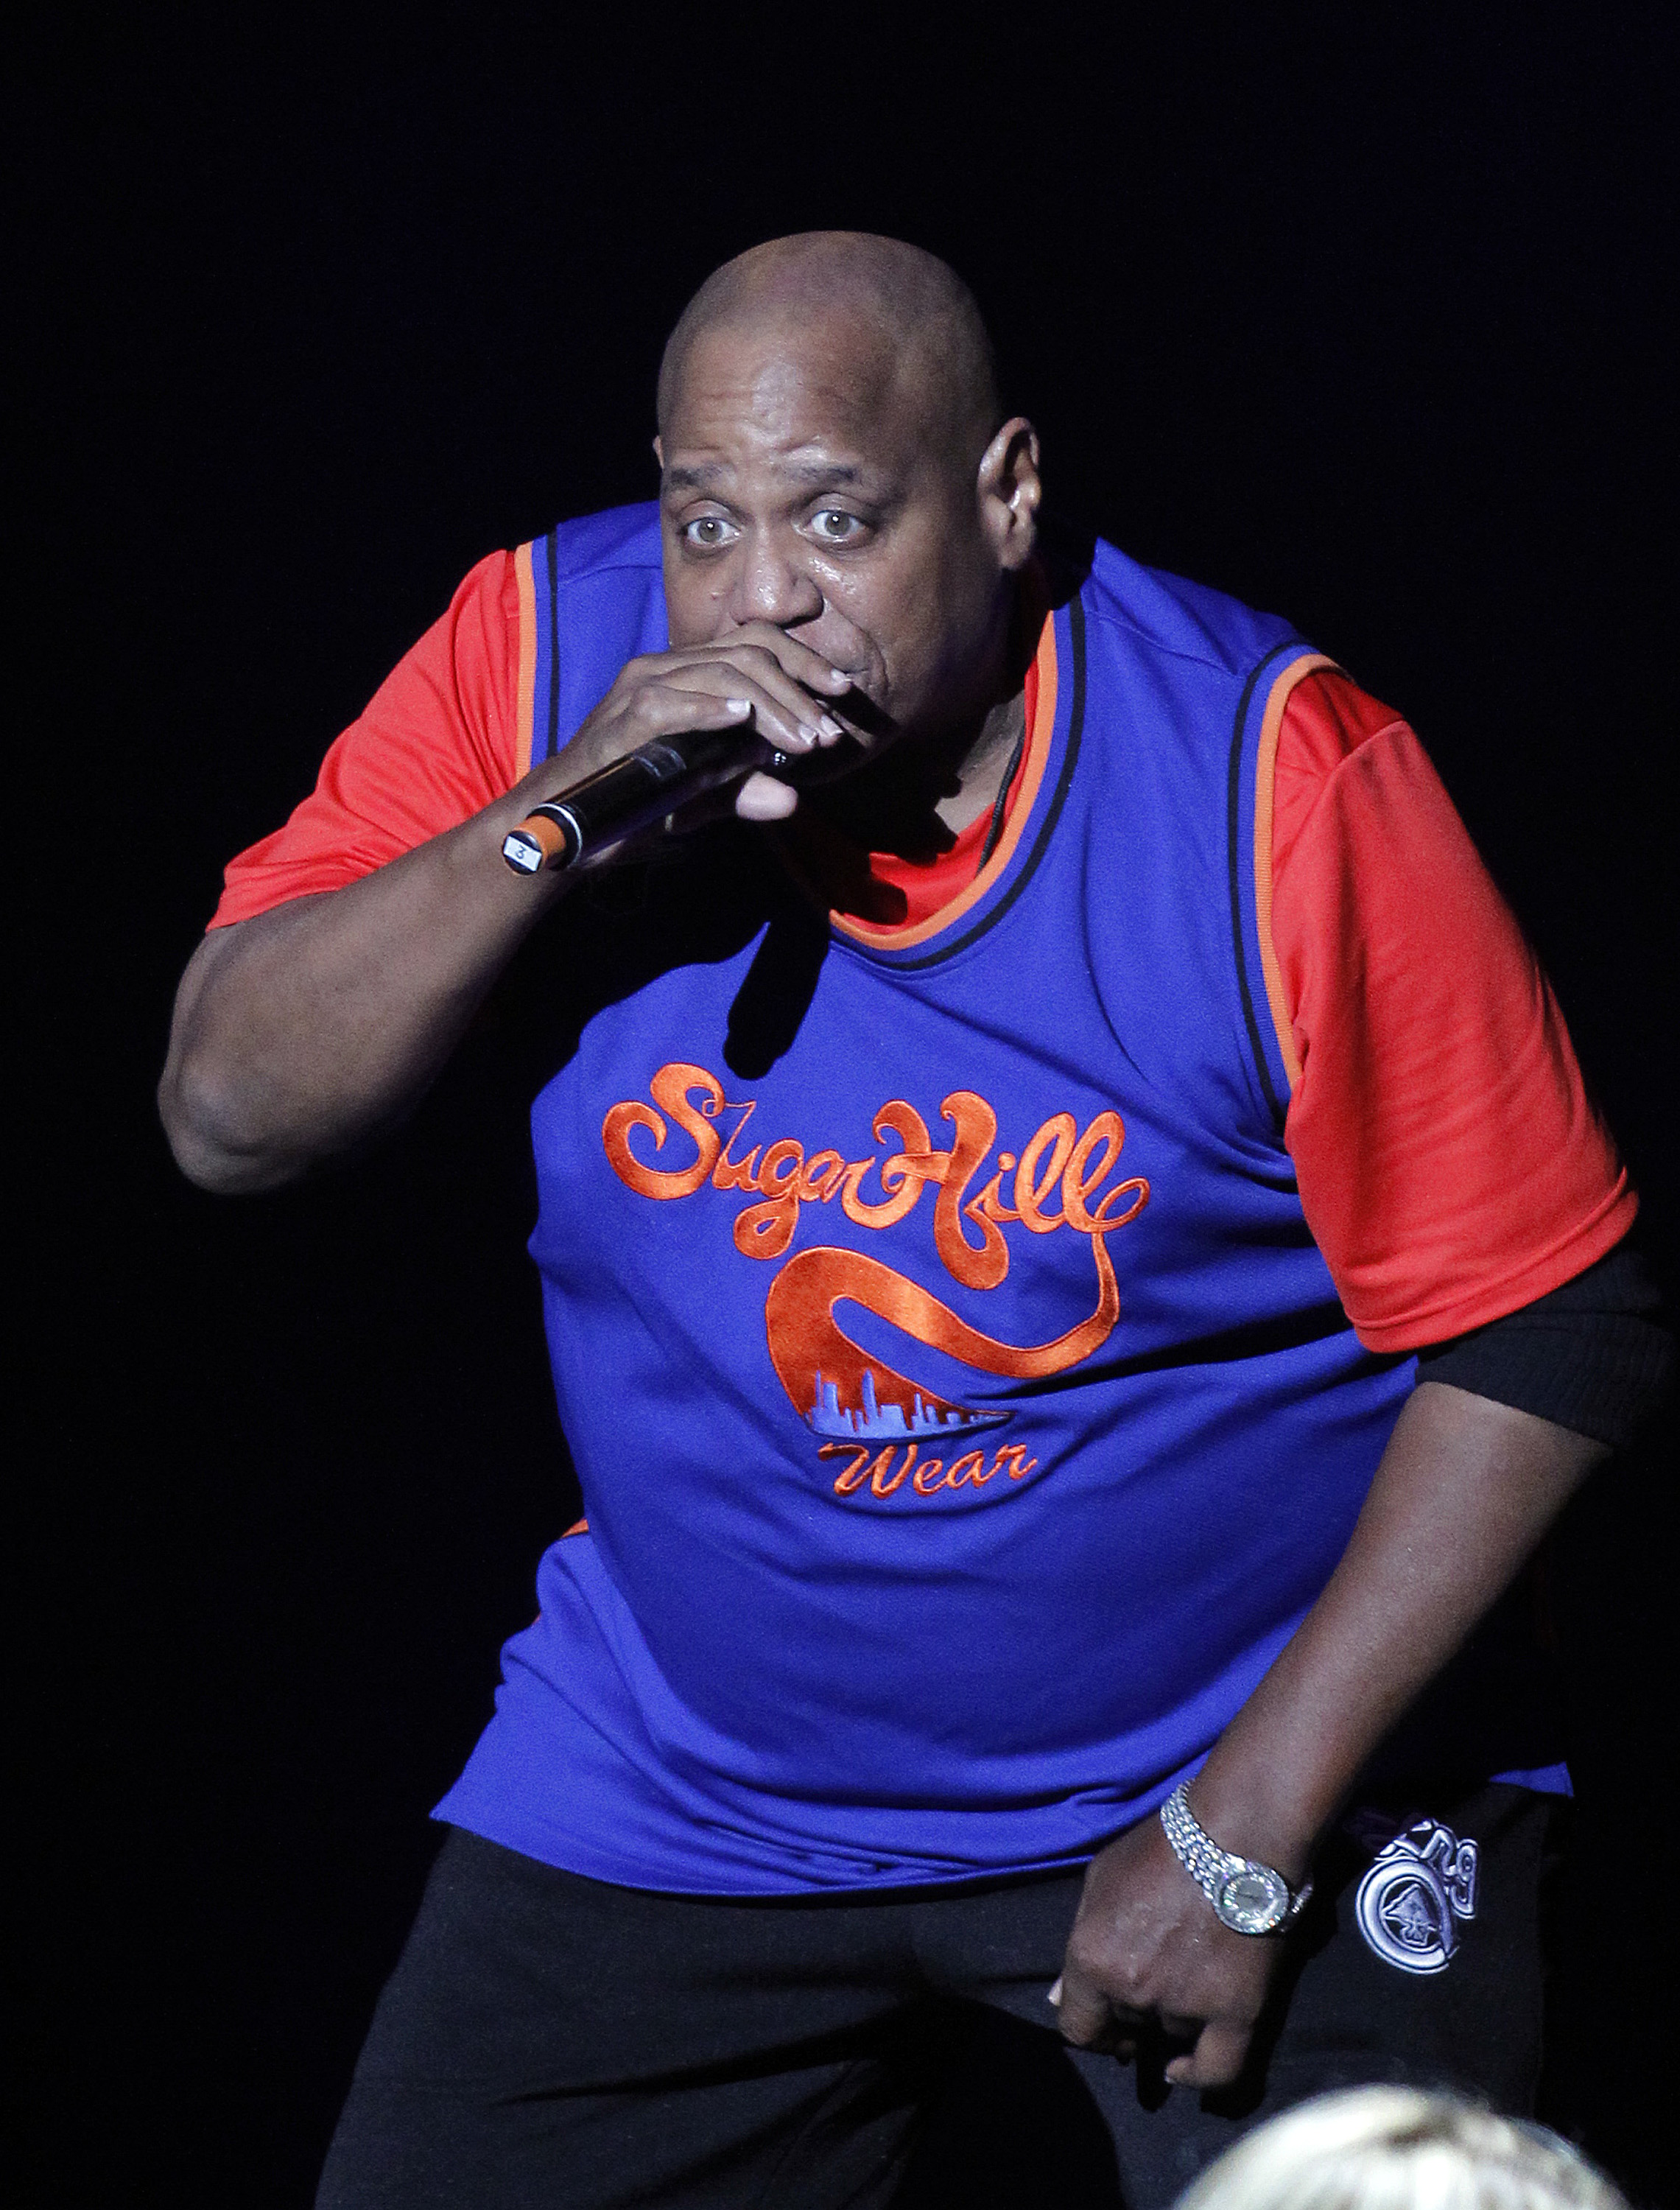 Sugarhill Gang's Henry 'Big Bank Hank' Jackson performs during the Justin Timberlake and Friends Old School Jam concert in 2011